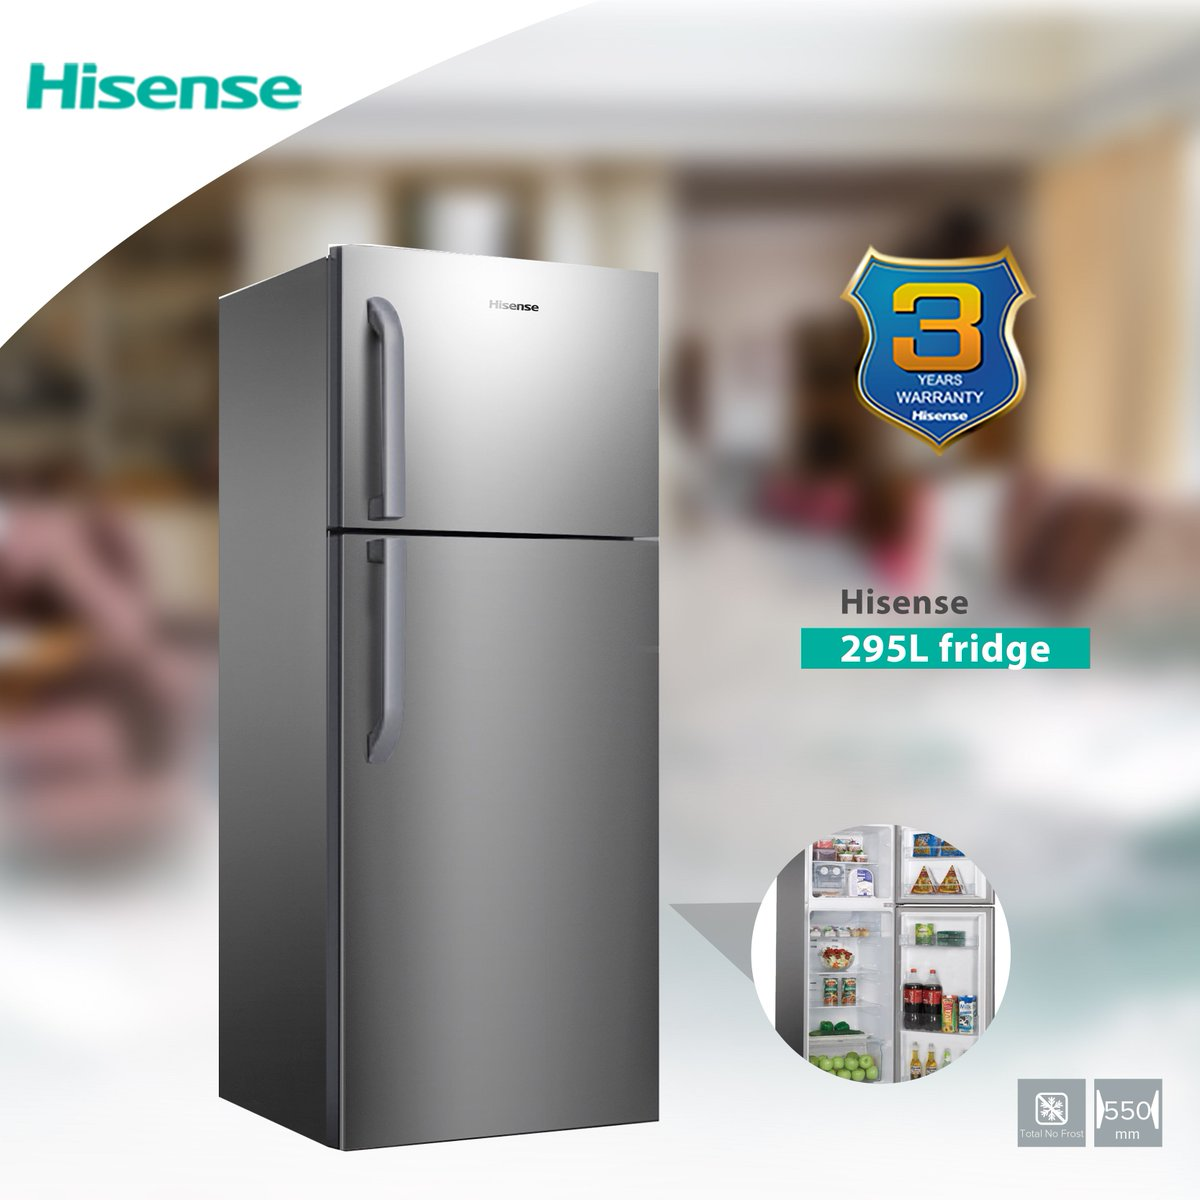 Hisense 295L Double Door Upper Mount Freezer Refrigerator - Silver